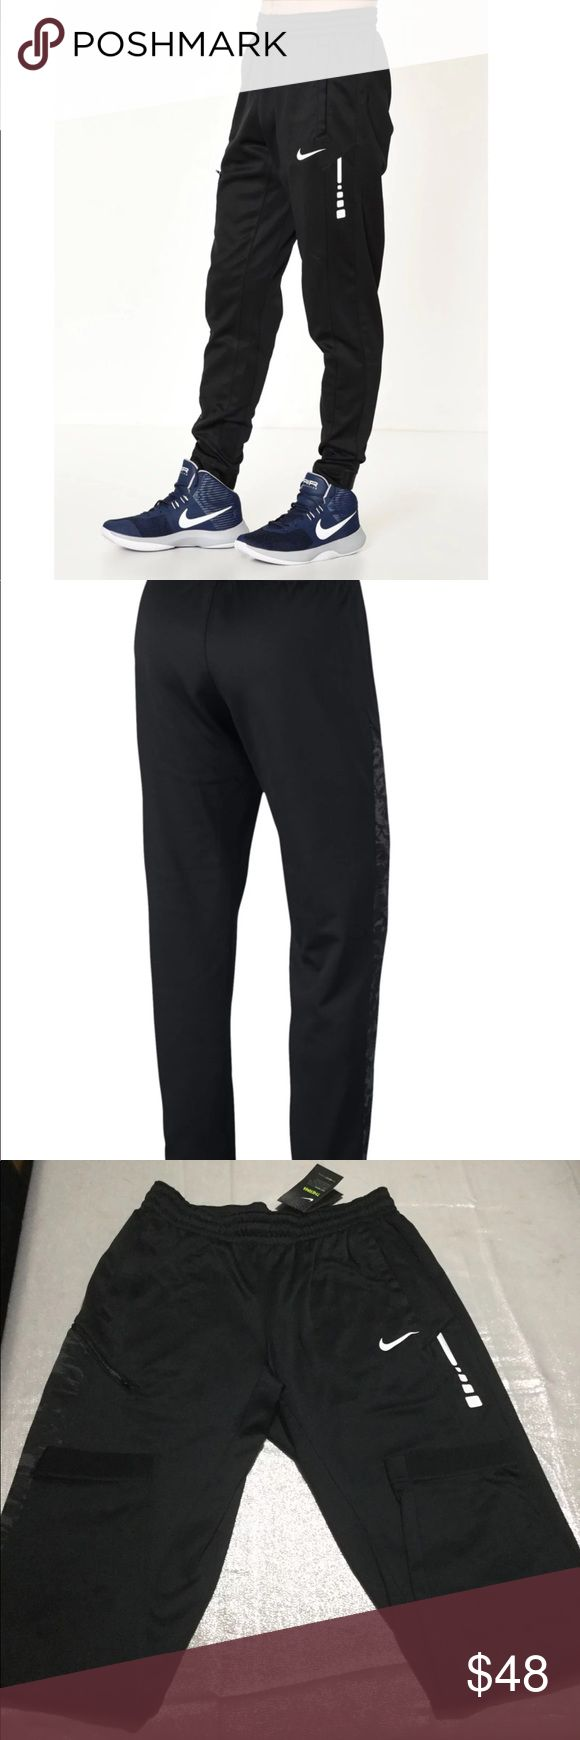 LARGE NIKE THERMA TRAINING PANTS MEN NWT Nike Therma Elite Basketball Pants, Size Large Men's, NWT, Retails $65+tax, Front Pockets, Zippered Media Pocket, Elastic Waistband with Internal Drawstring, Color Black, PRICE FIRM Nike Pants Sweatpants & Joggers